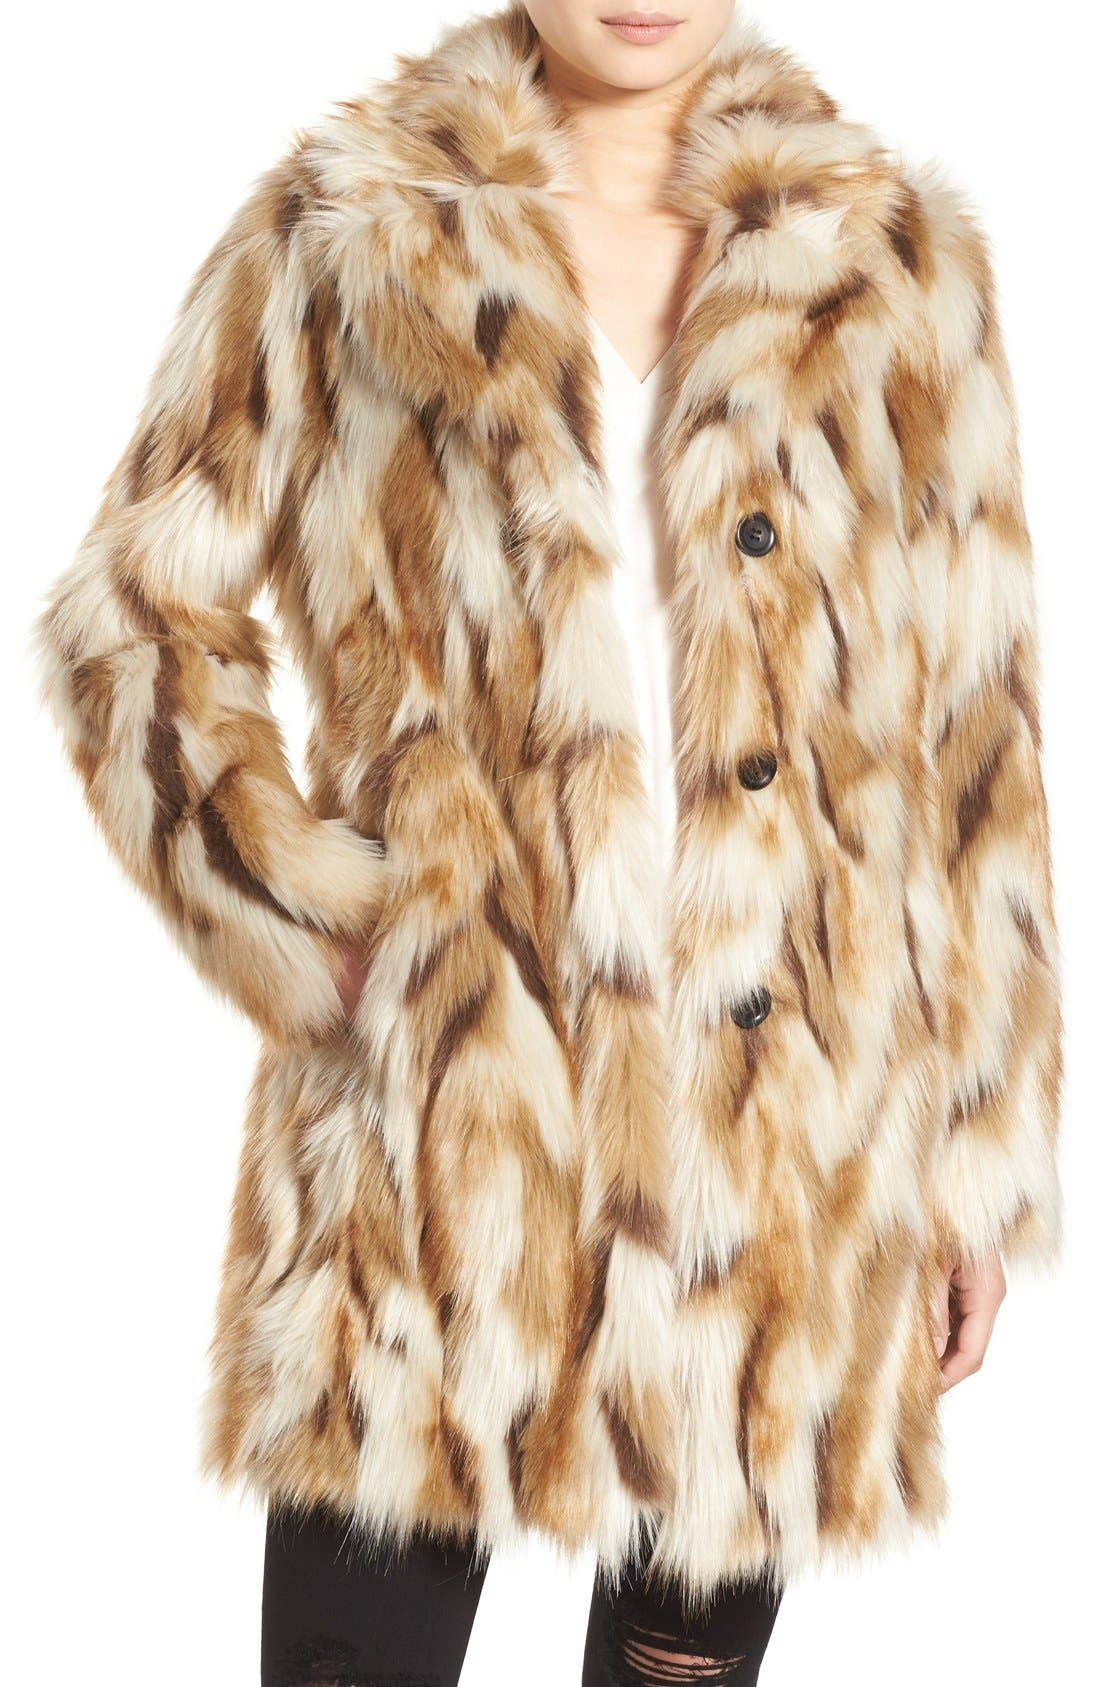 7 for All Mankind Faux Fur Coat,                             Main thumbnail 1, color,                             250